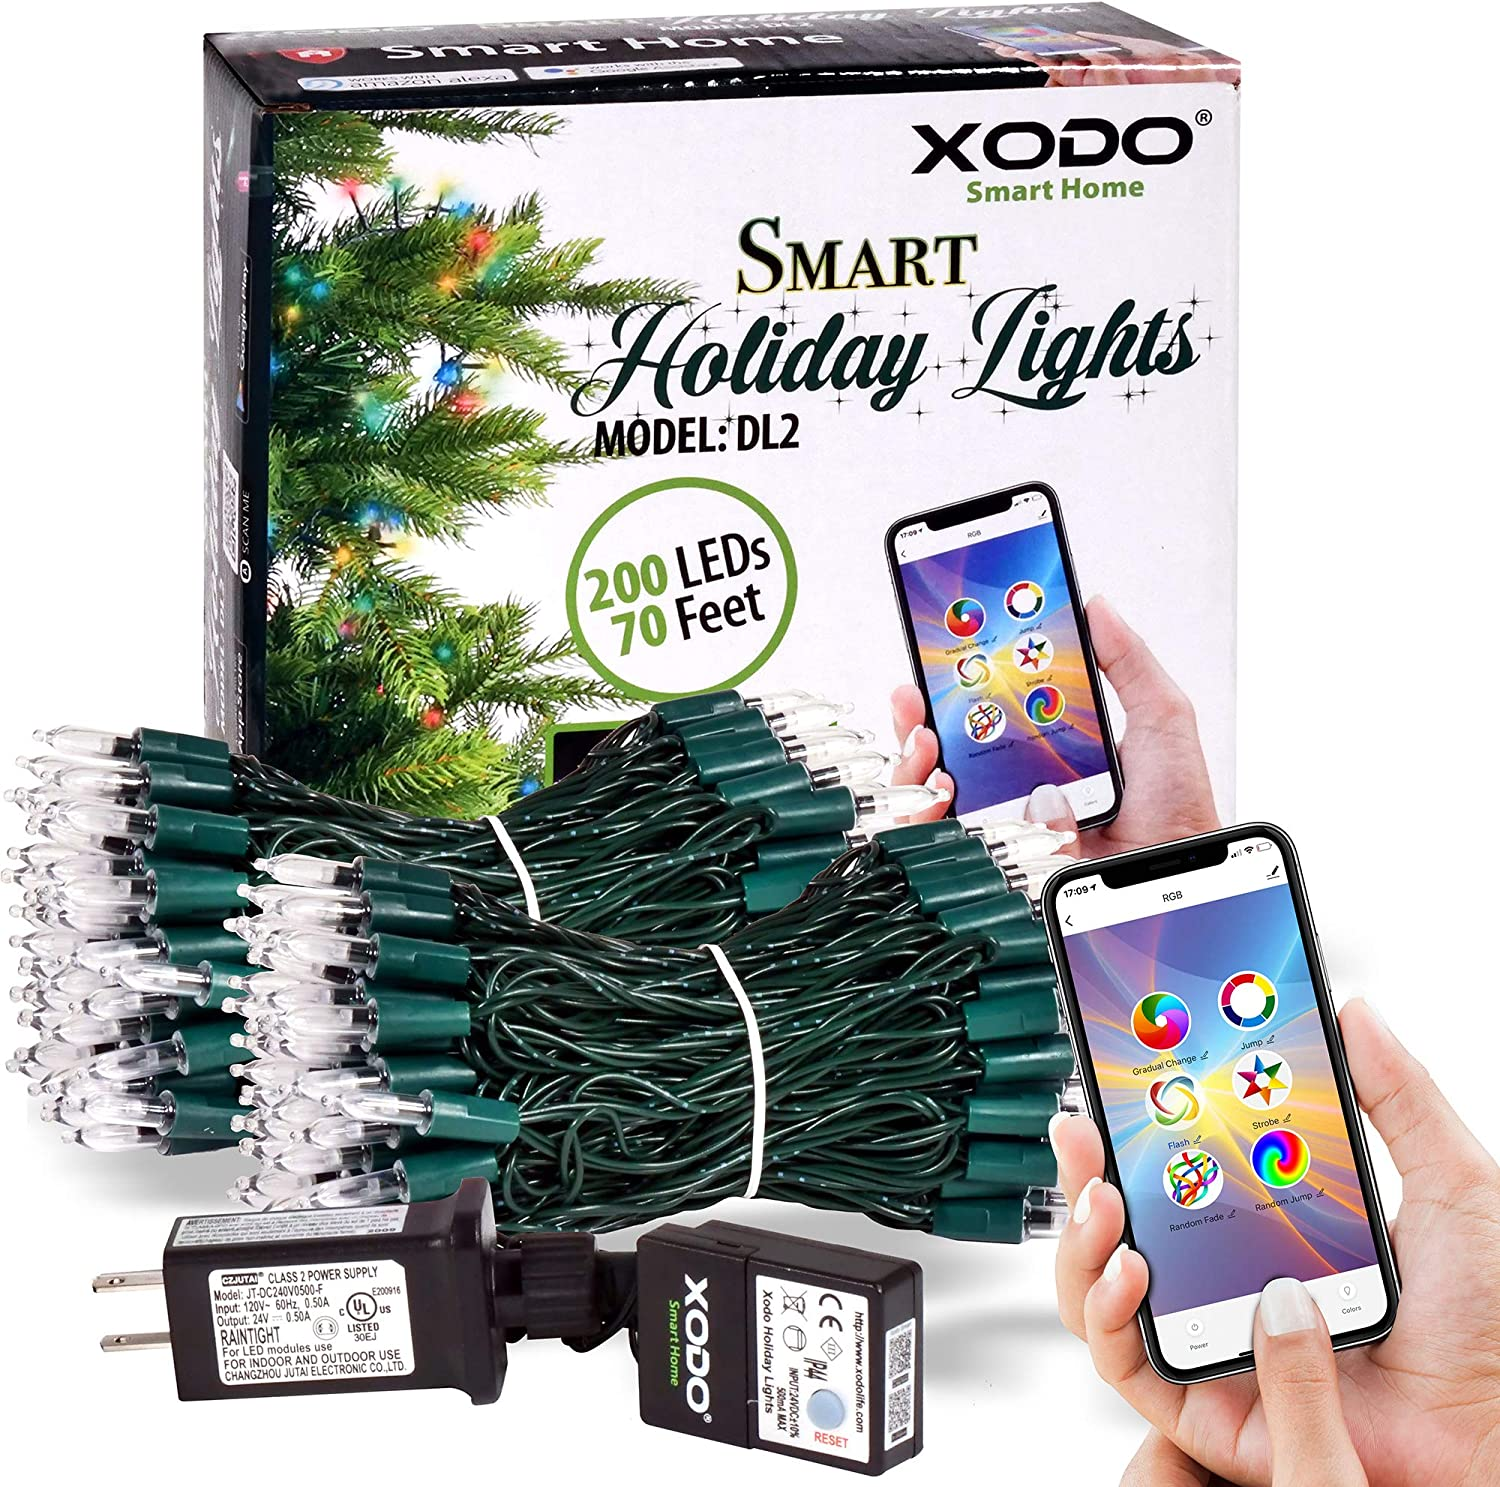 XODO DL1 Indoor/Outdoor WiFi RGB String Lights 35ft 100LED, Smart Controlled by App, Infinite Color String Lights for Christmas Tree Or Around House, Works with Alexa, Google Home, Siri (35ft)